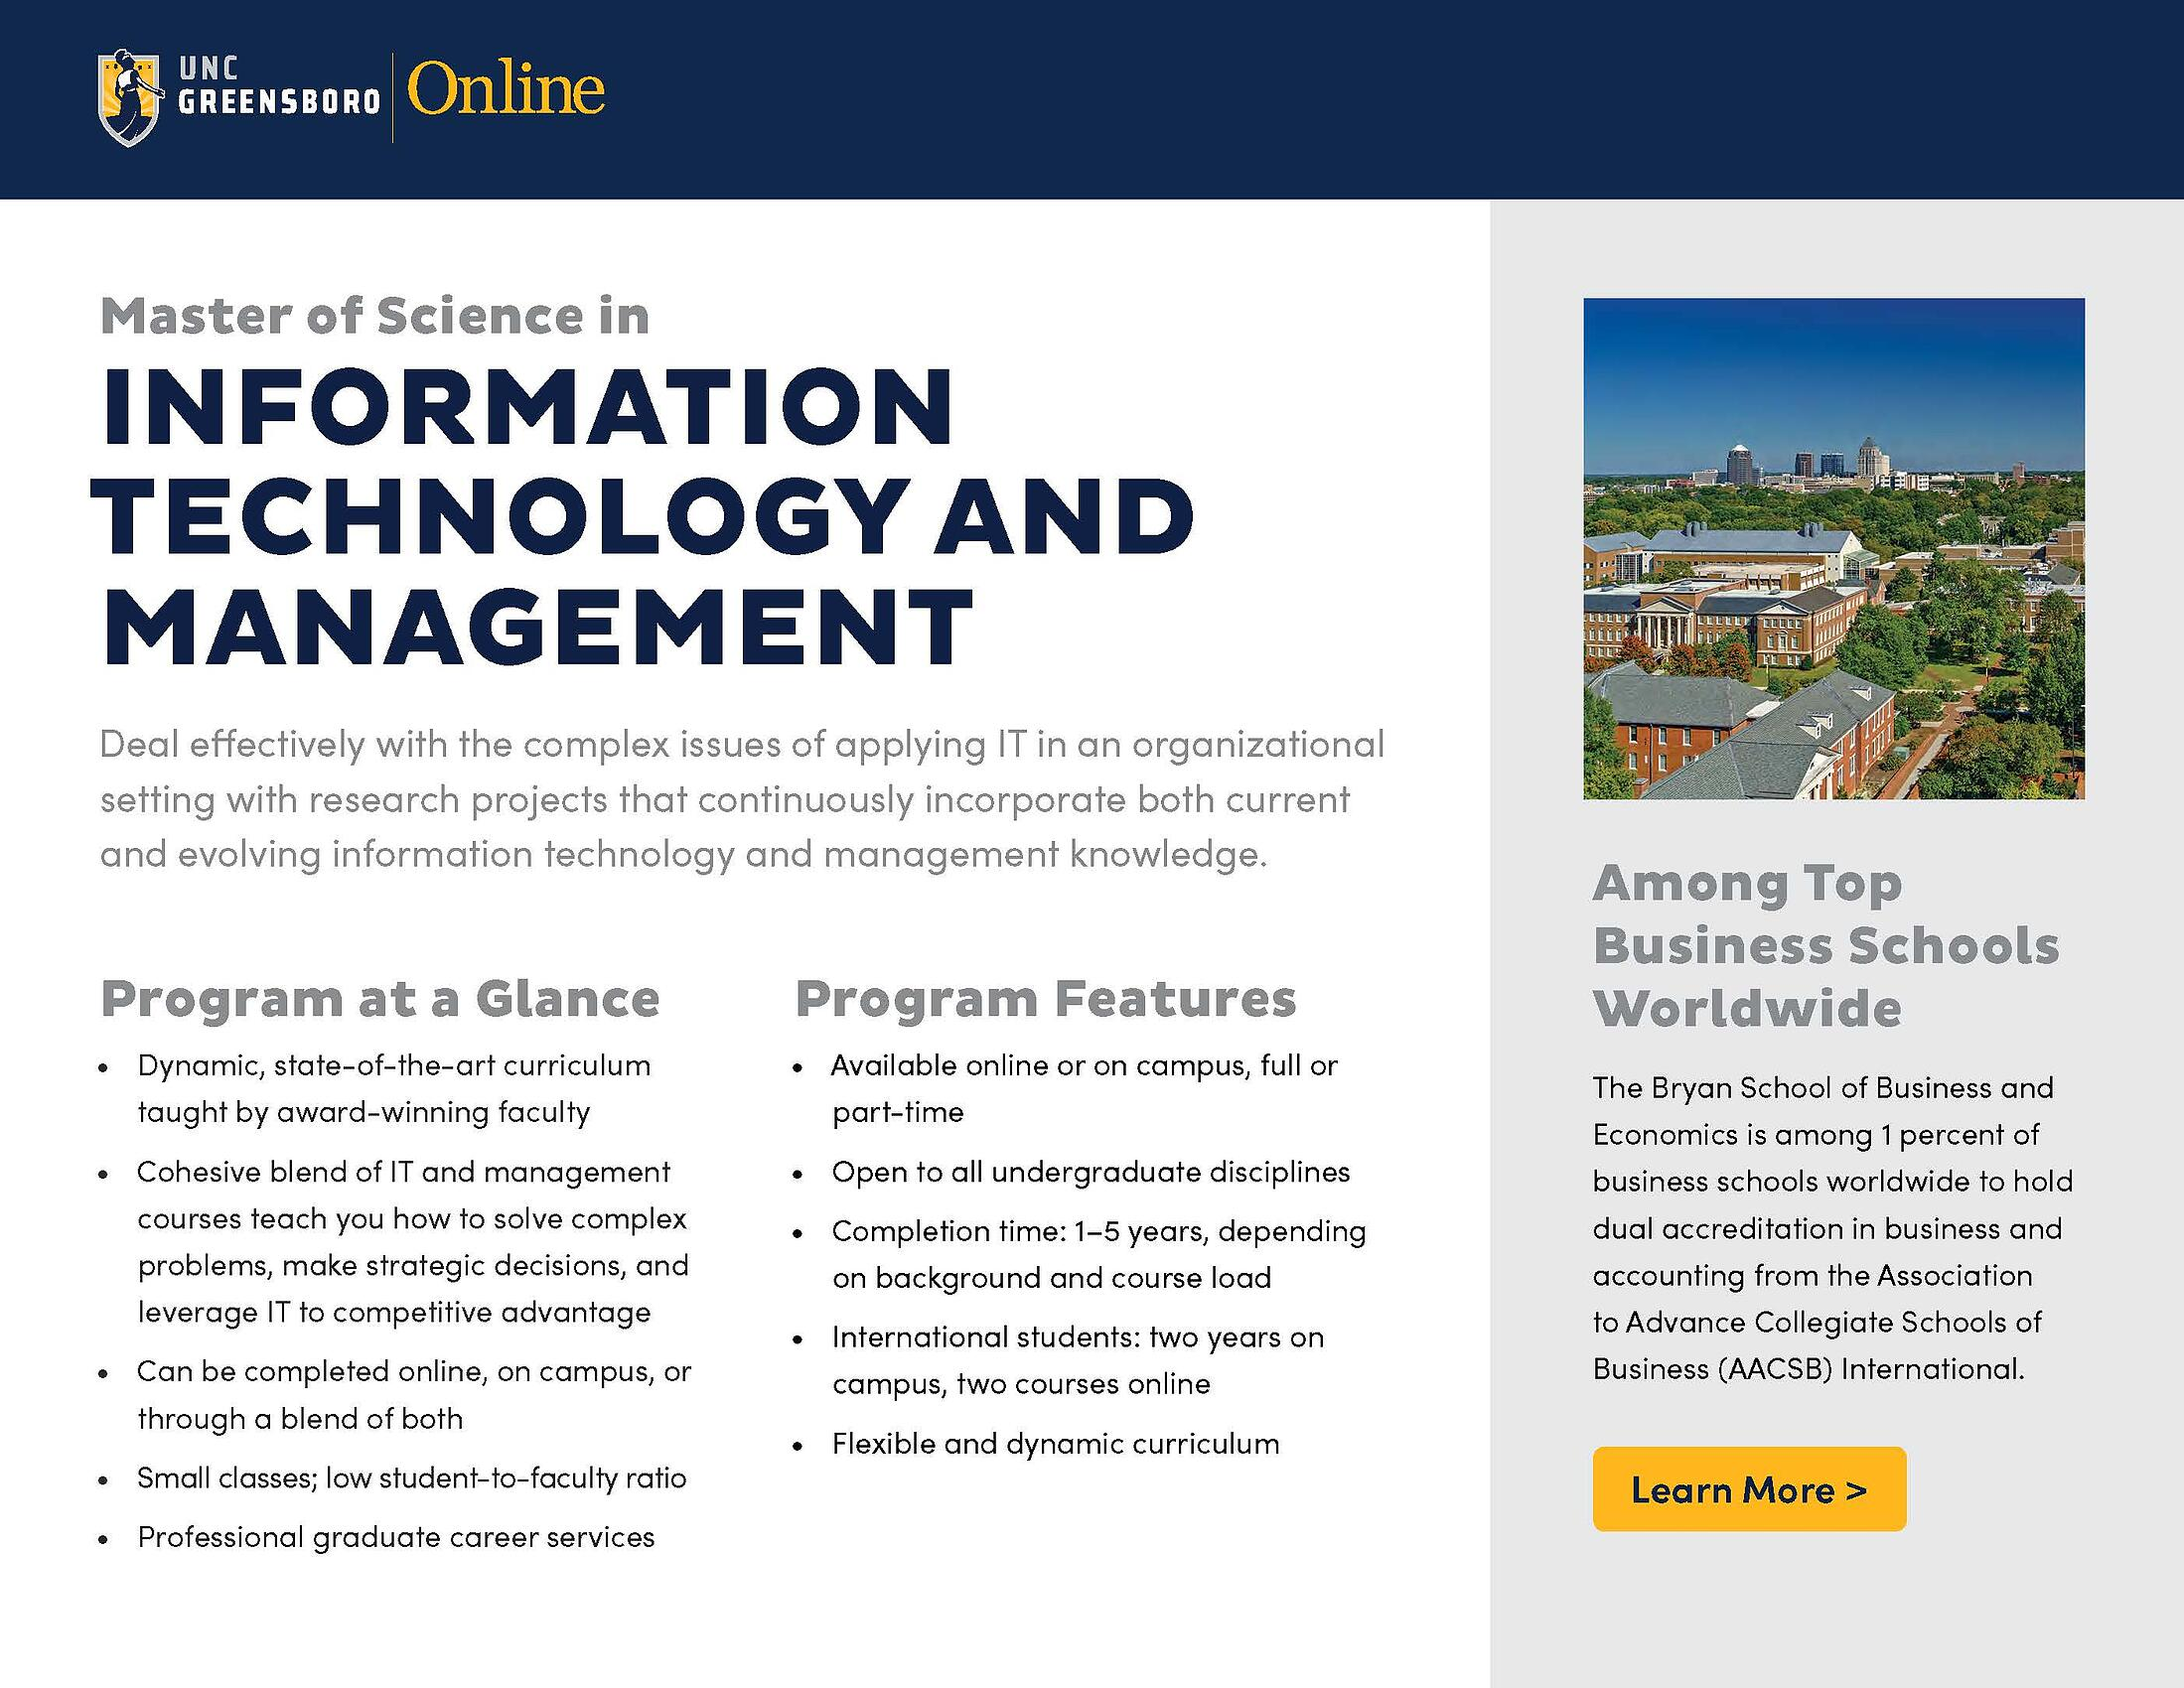 Technology Management Image: Master Of Science In Information Technology & Management